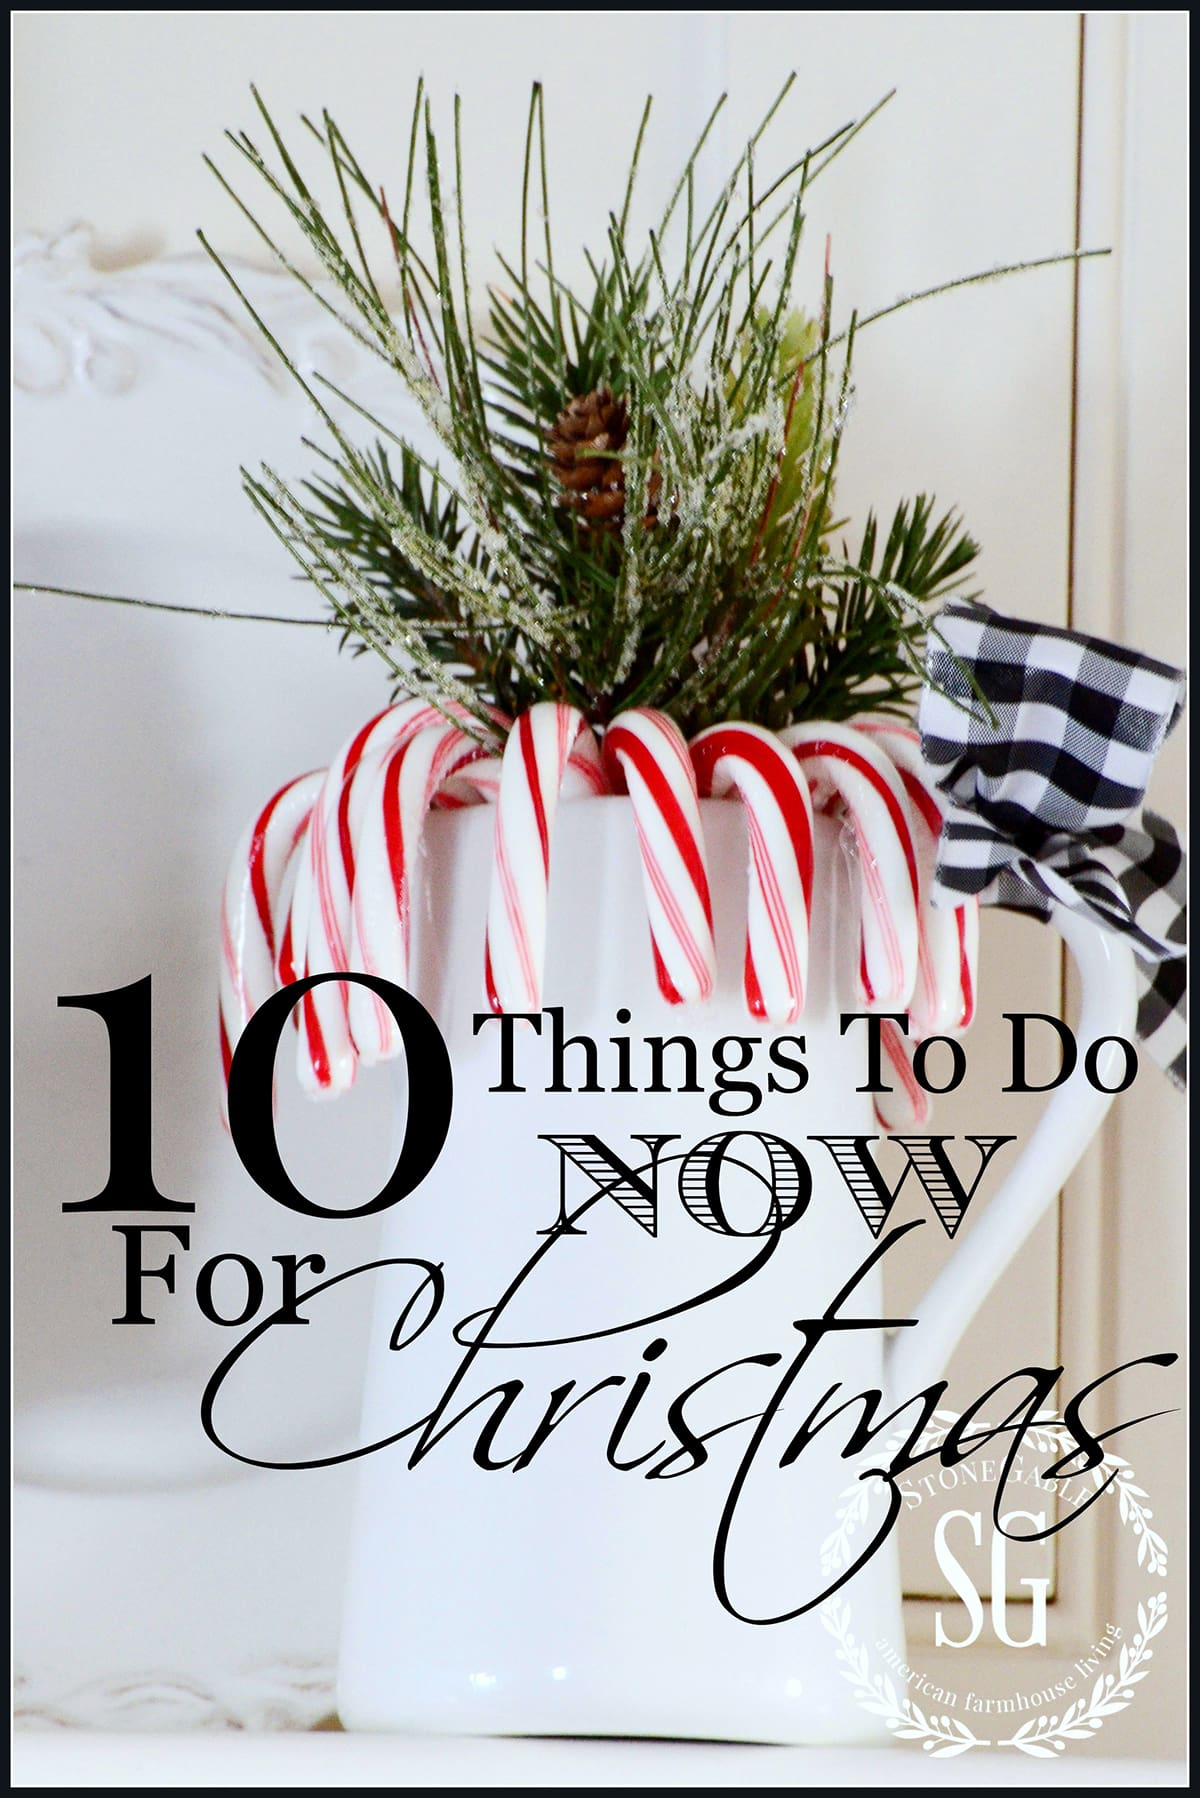 10-things-to-do-now-for-christmas-get-a-head-start-stonegableblog-com